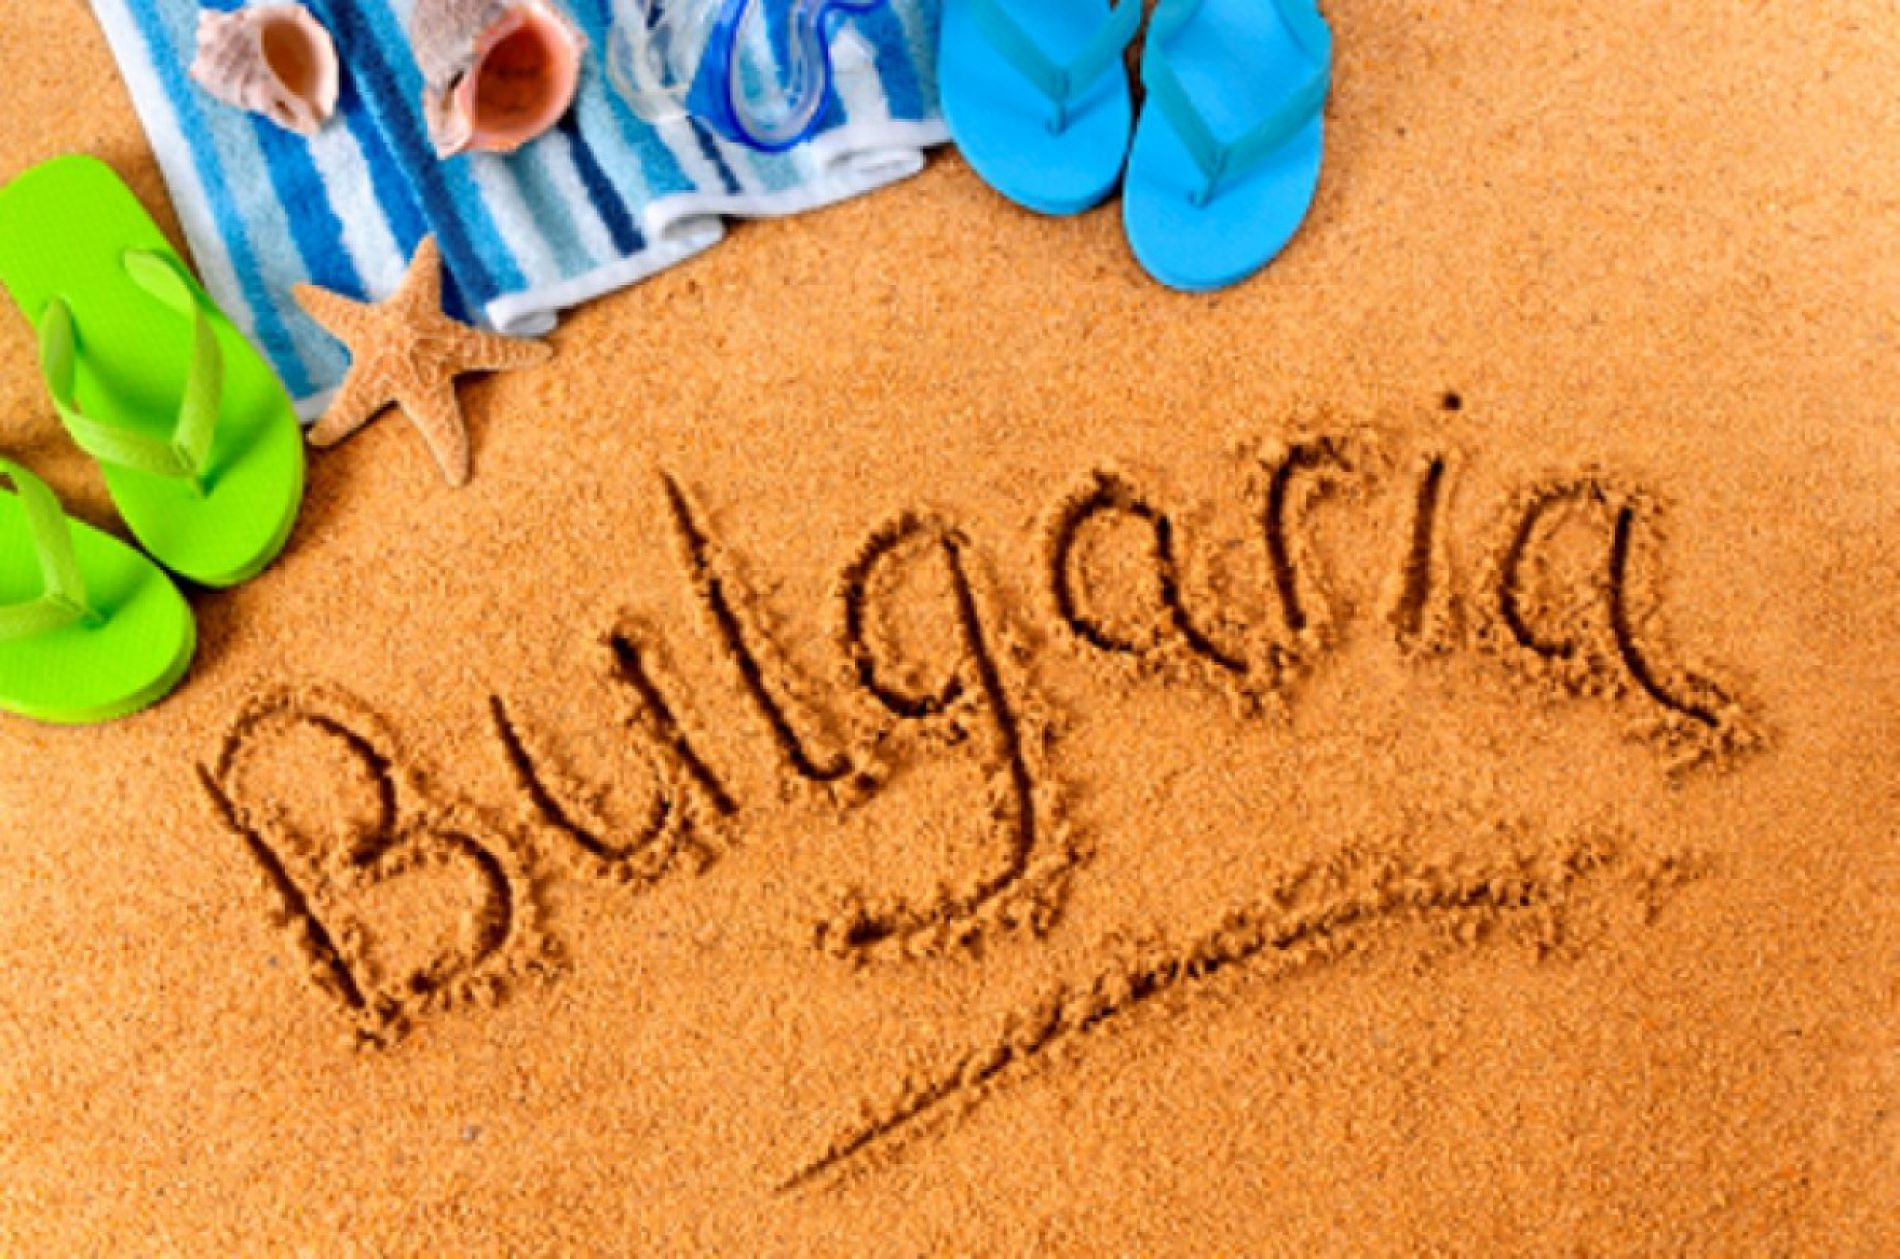 Russians found a good life in Bulgaria - Financial Times